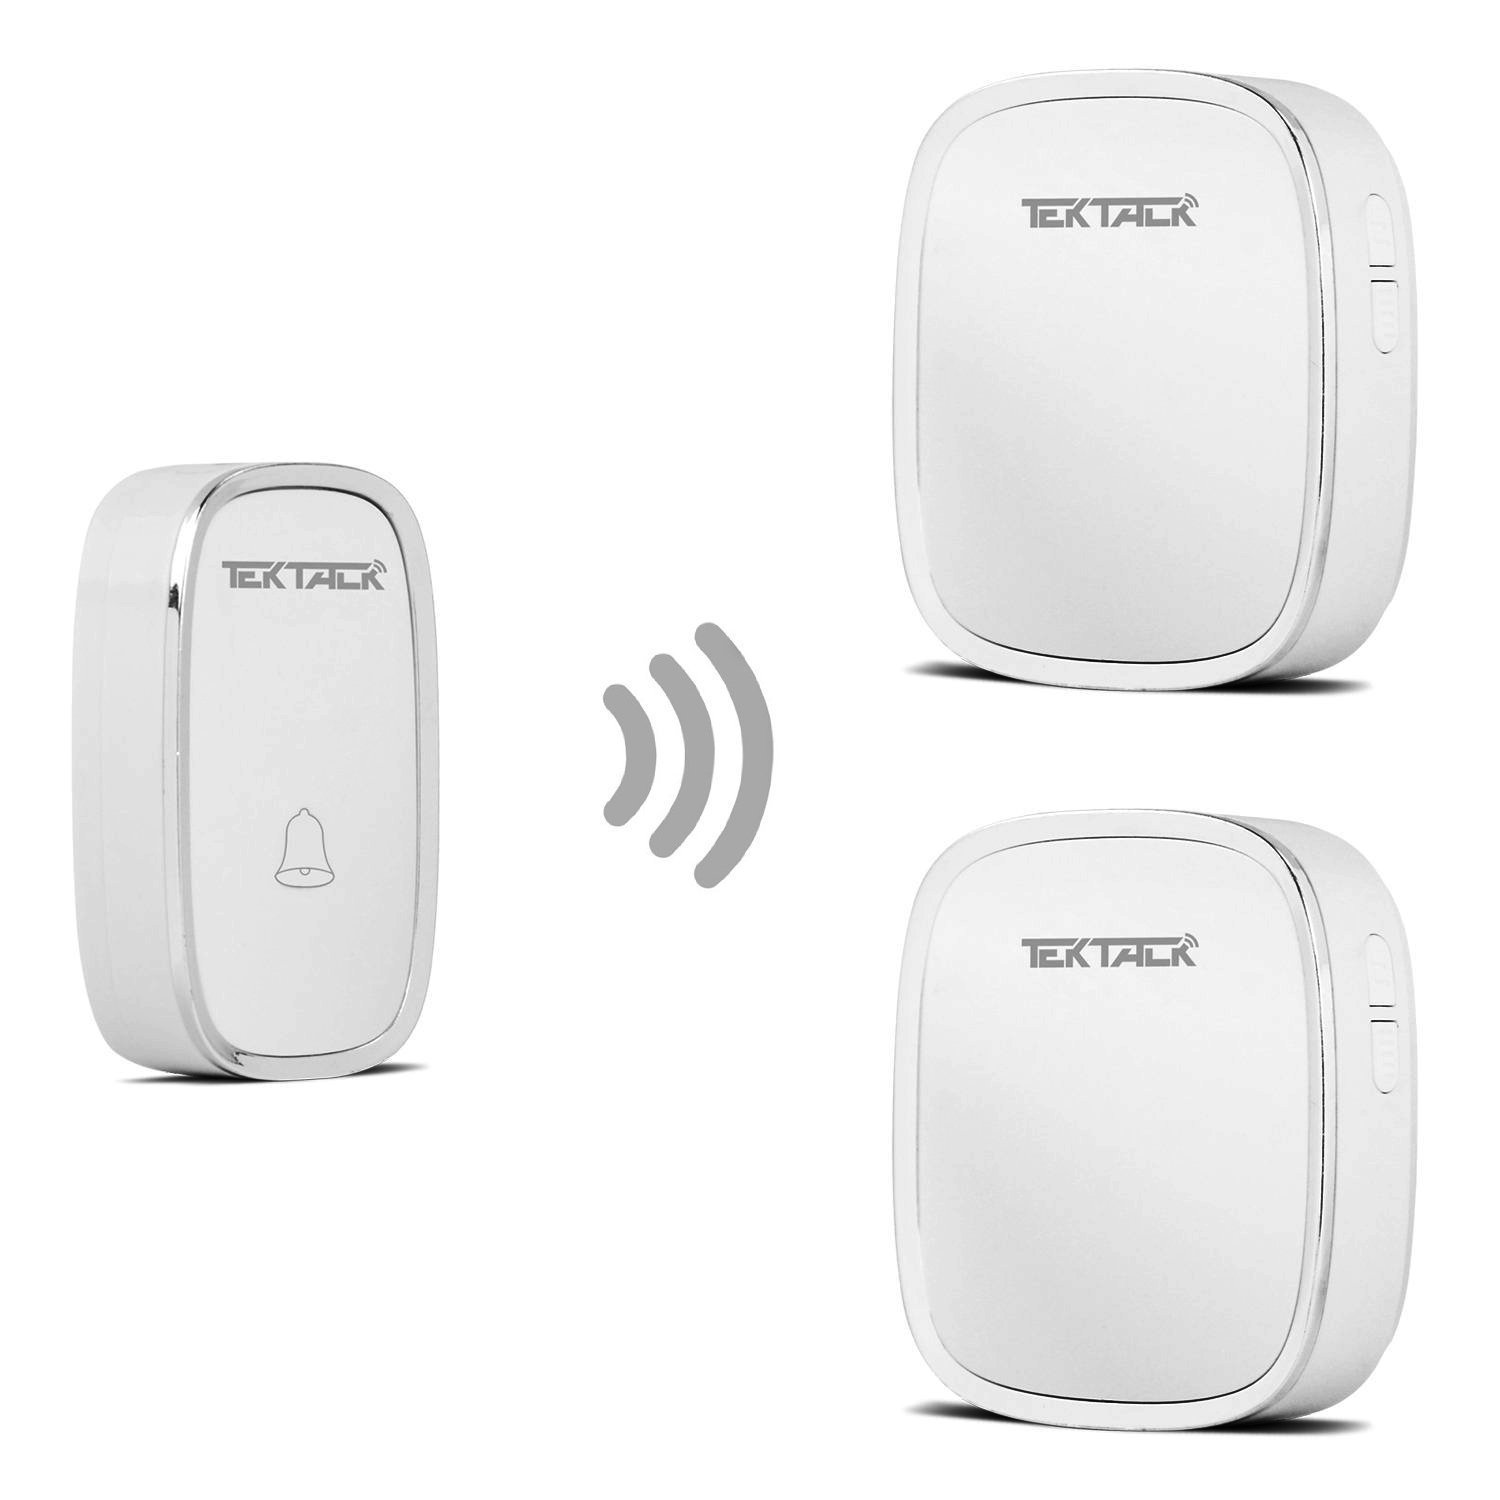 Tektalk Wireless Metallic Edge Decored Door Bell Chime and Push Button with 36 Chimes & Volume Levels-White (1 Remote Button and 2 Plug-in Receivers with LED Indicator) by Tektalk